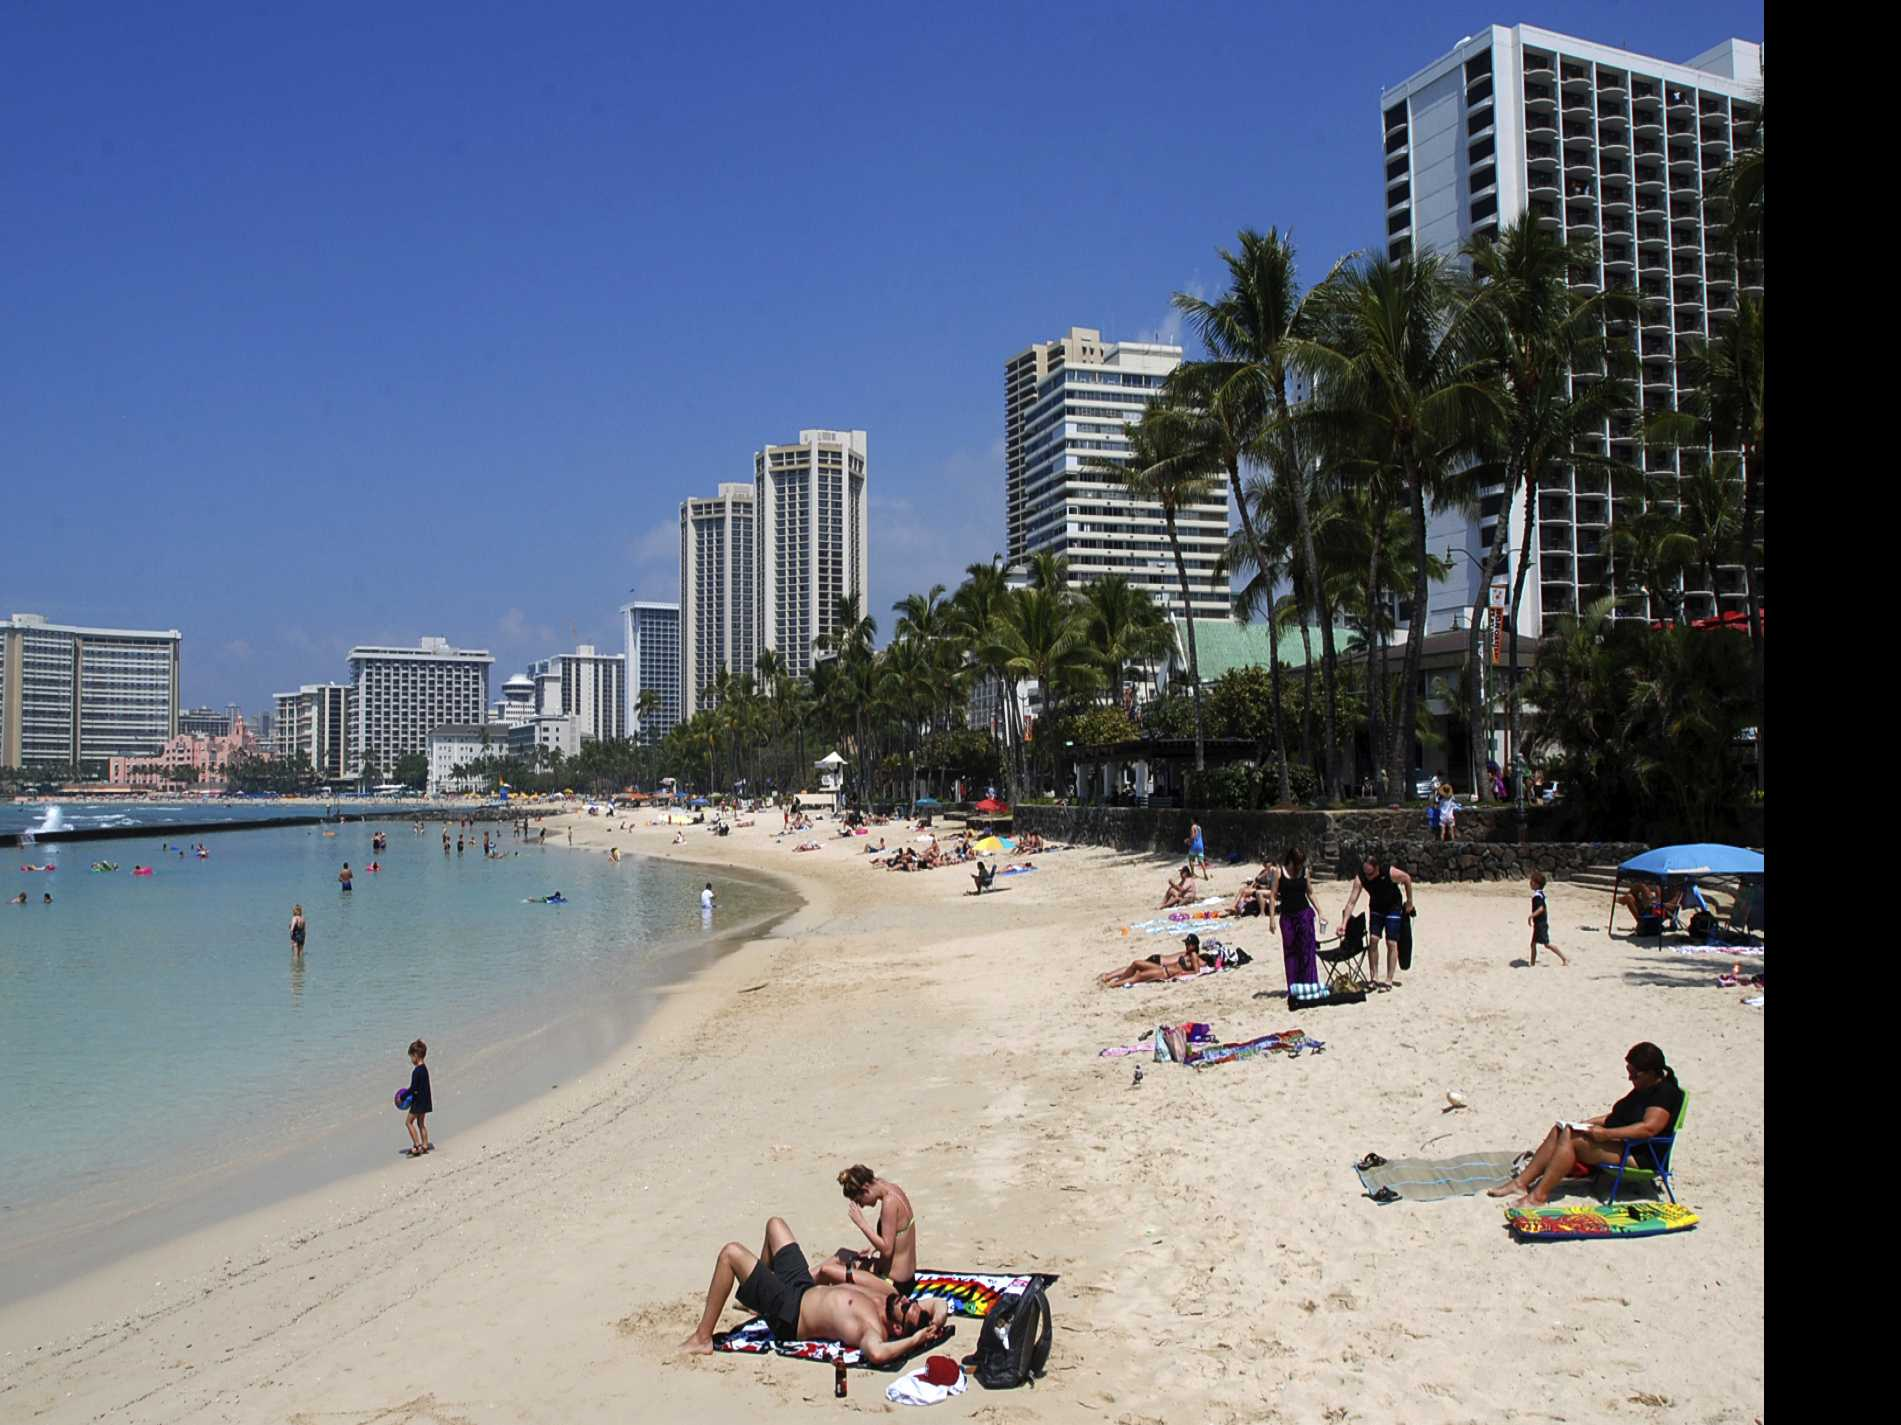 Hawaii Poised to Ban Sale of Some Sunscreens That Damage Coral